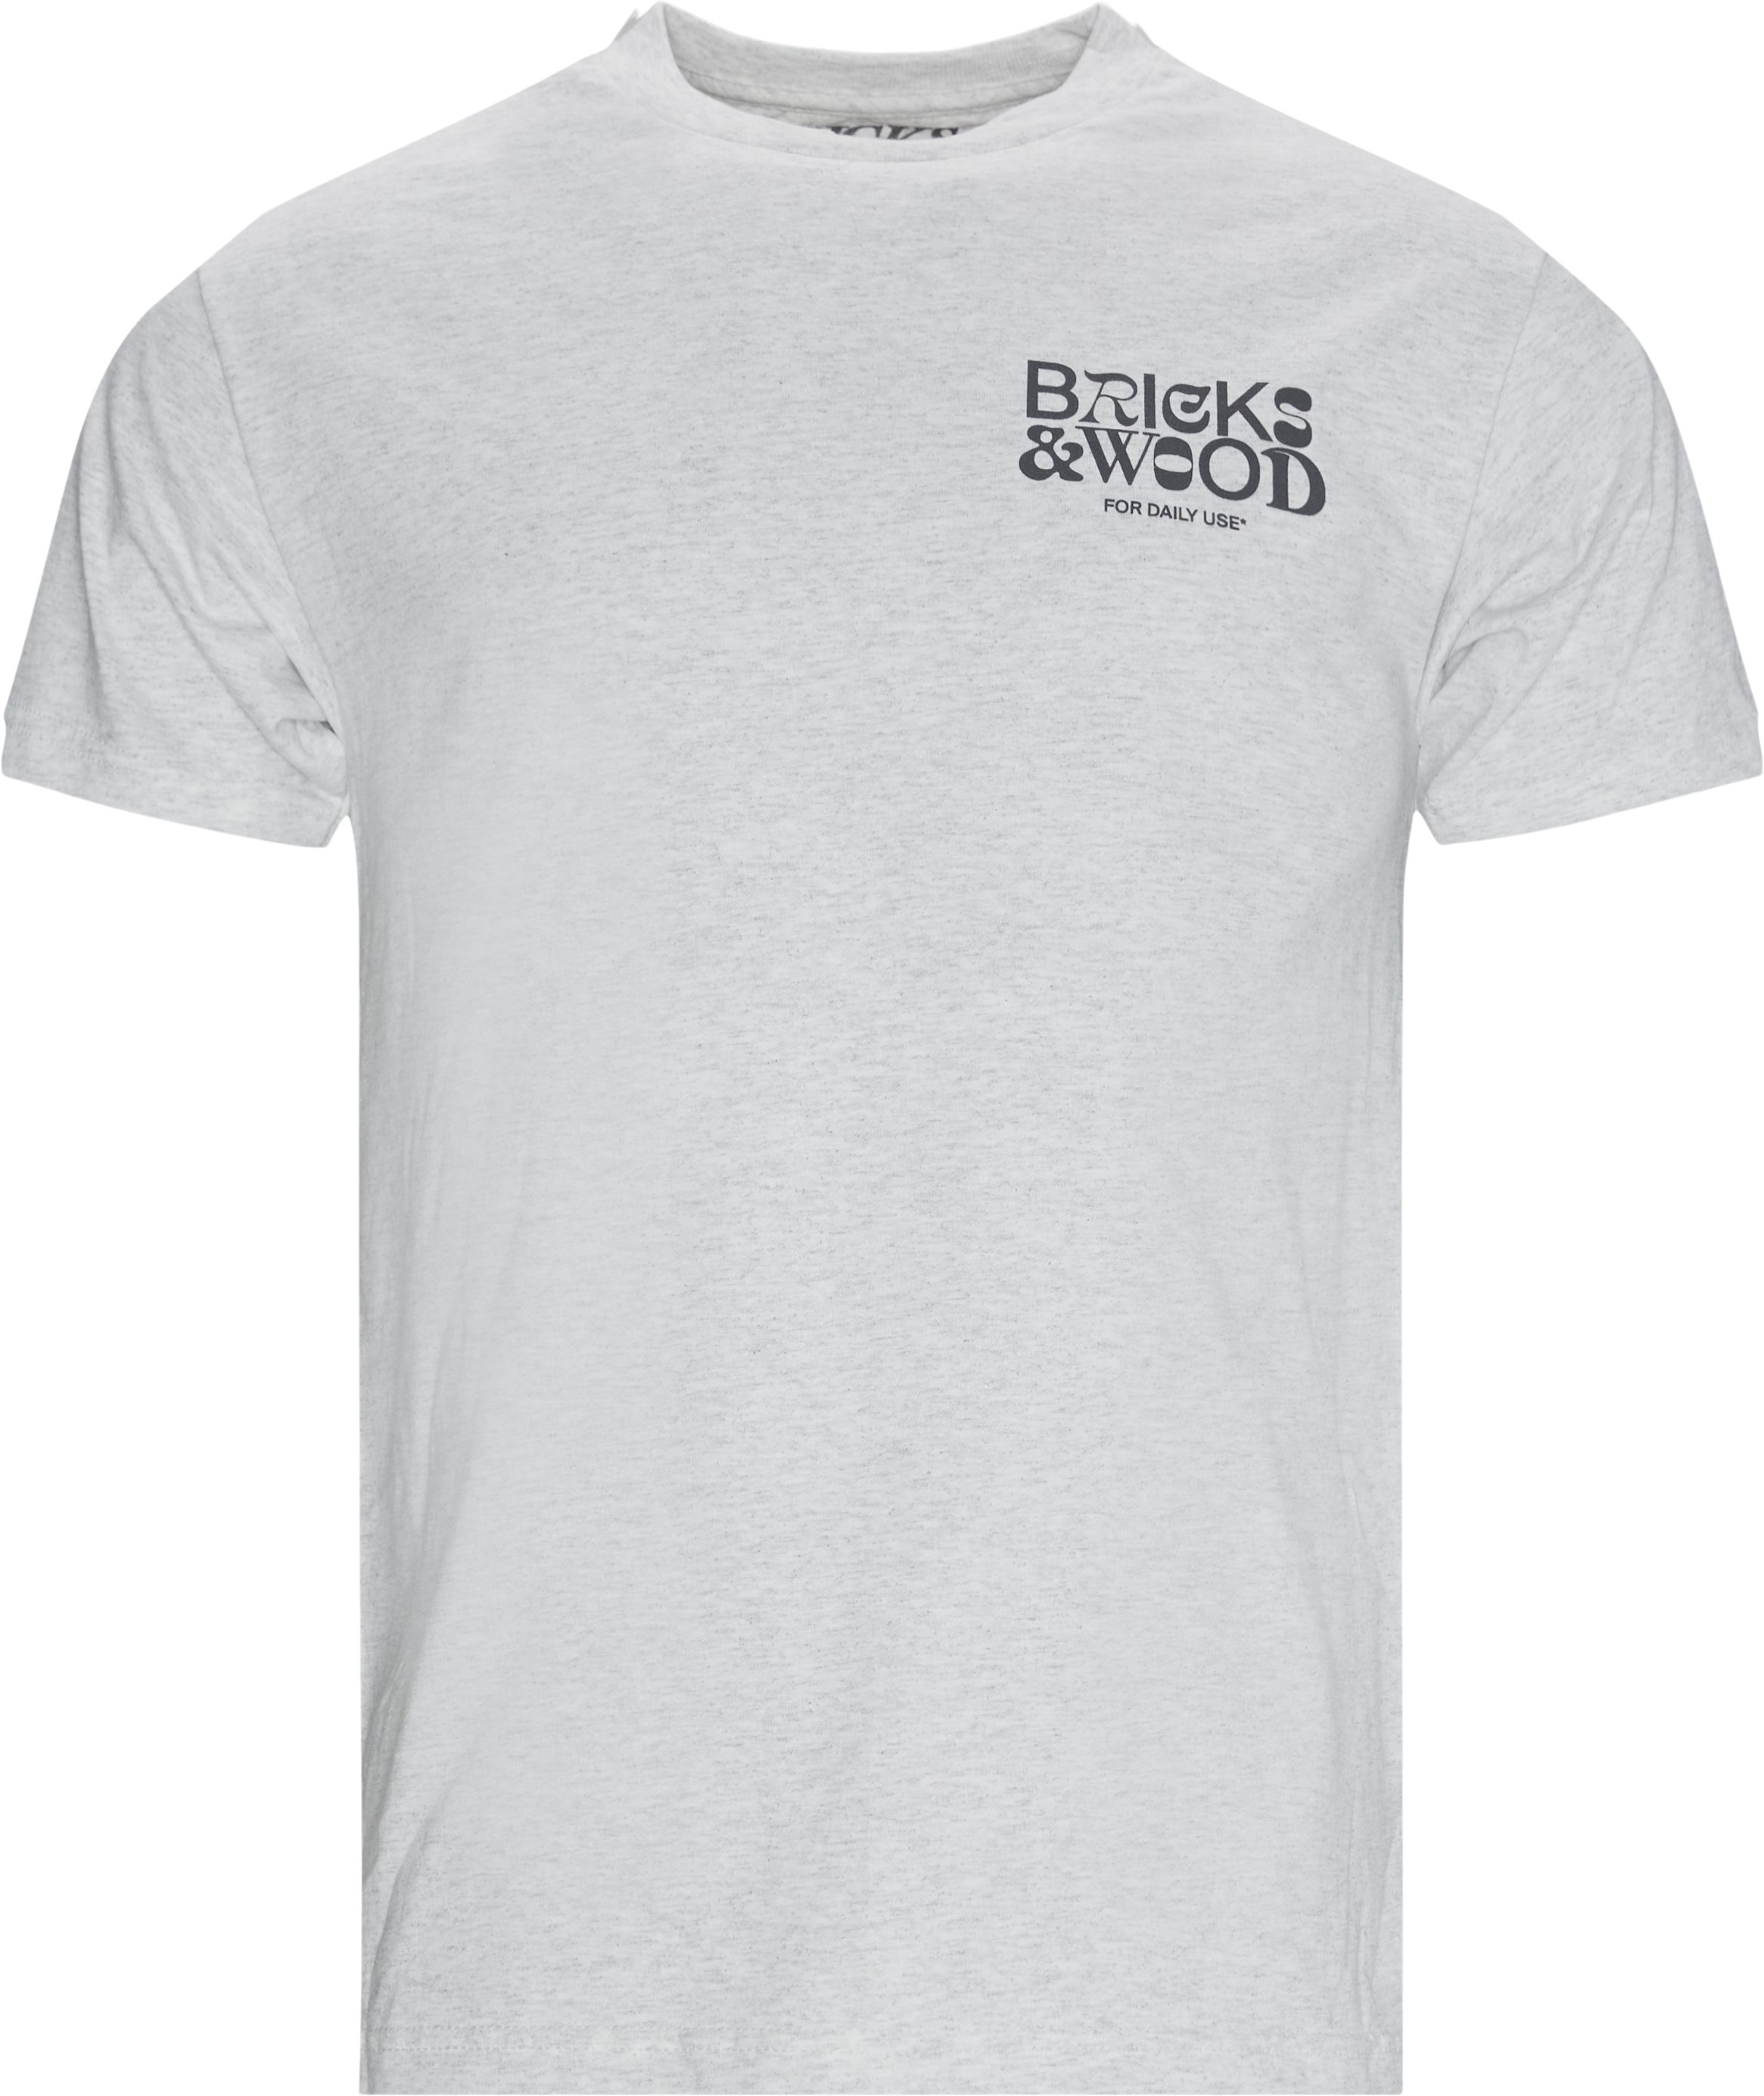 For Daily Use Tee - T-shirts - Regular - Grå